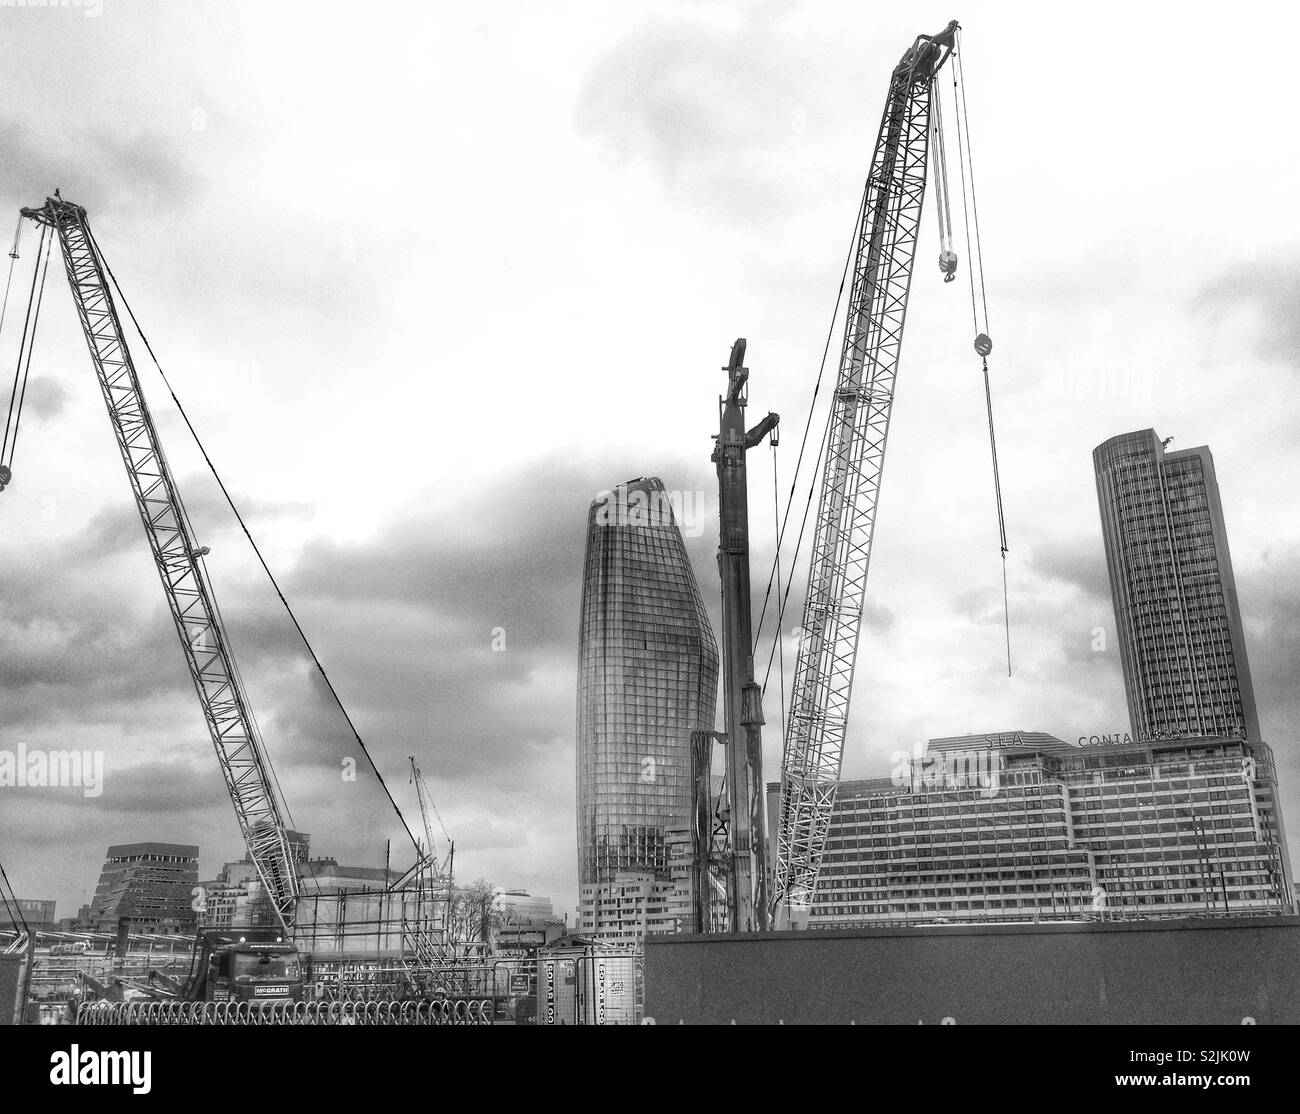 Construction site working on the new River Thames super sewer looking over towards the south bank of the river, London, England, UK. - Stock Image